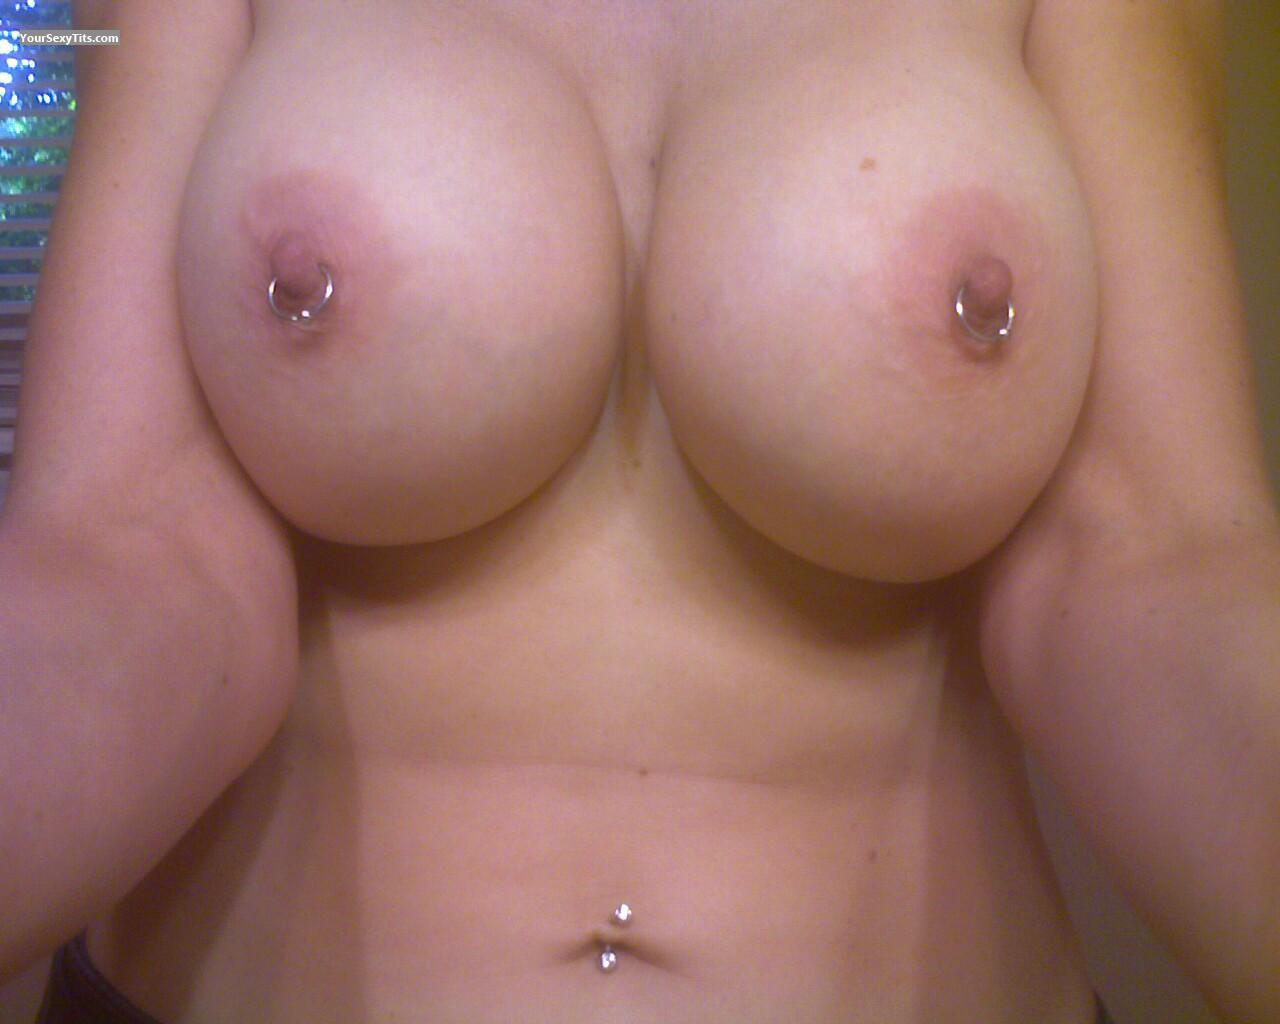 my friend's big tits (selfie) - friend from united states tit flash